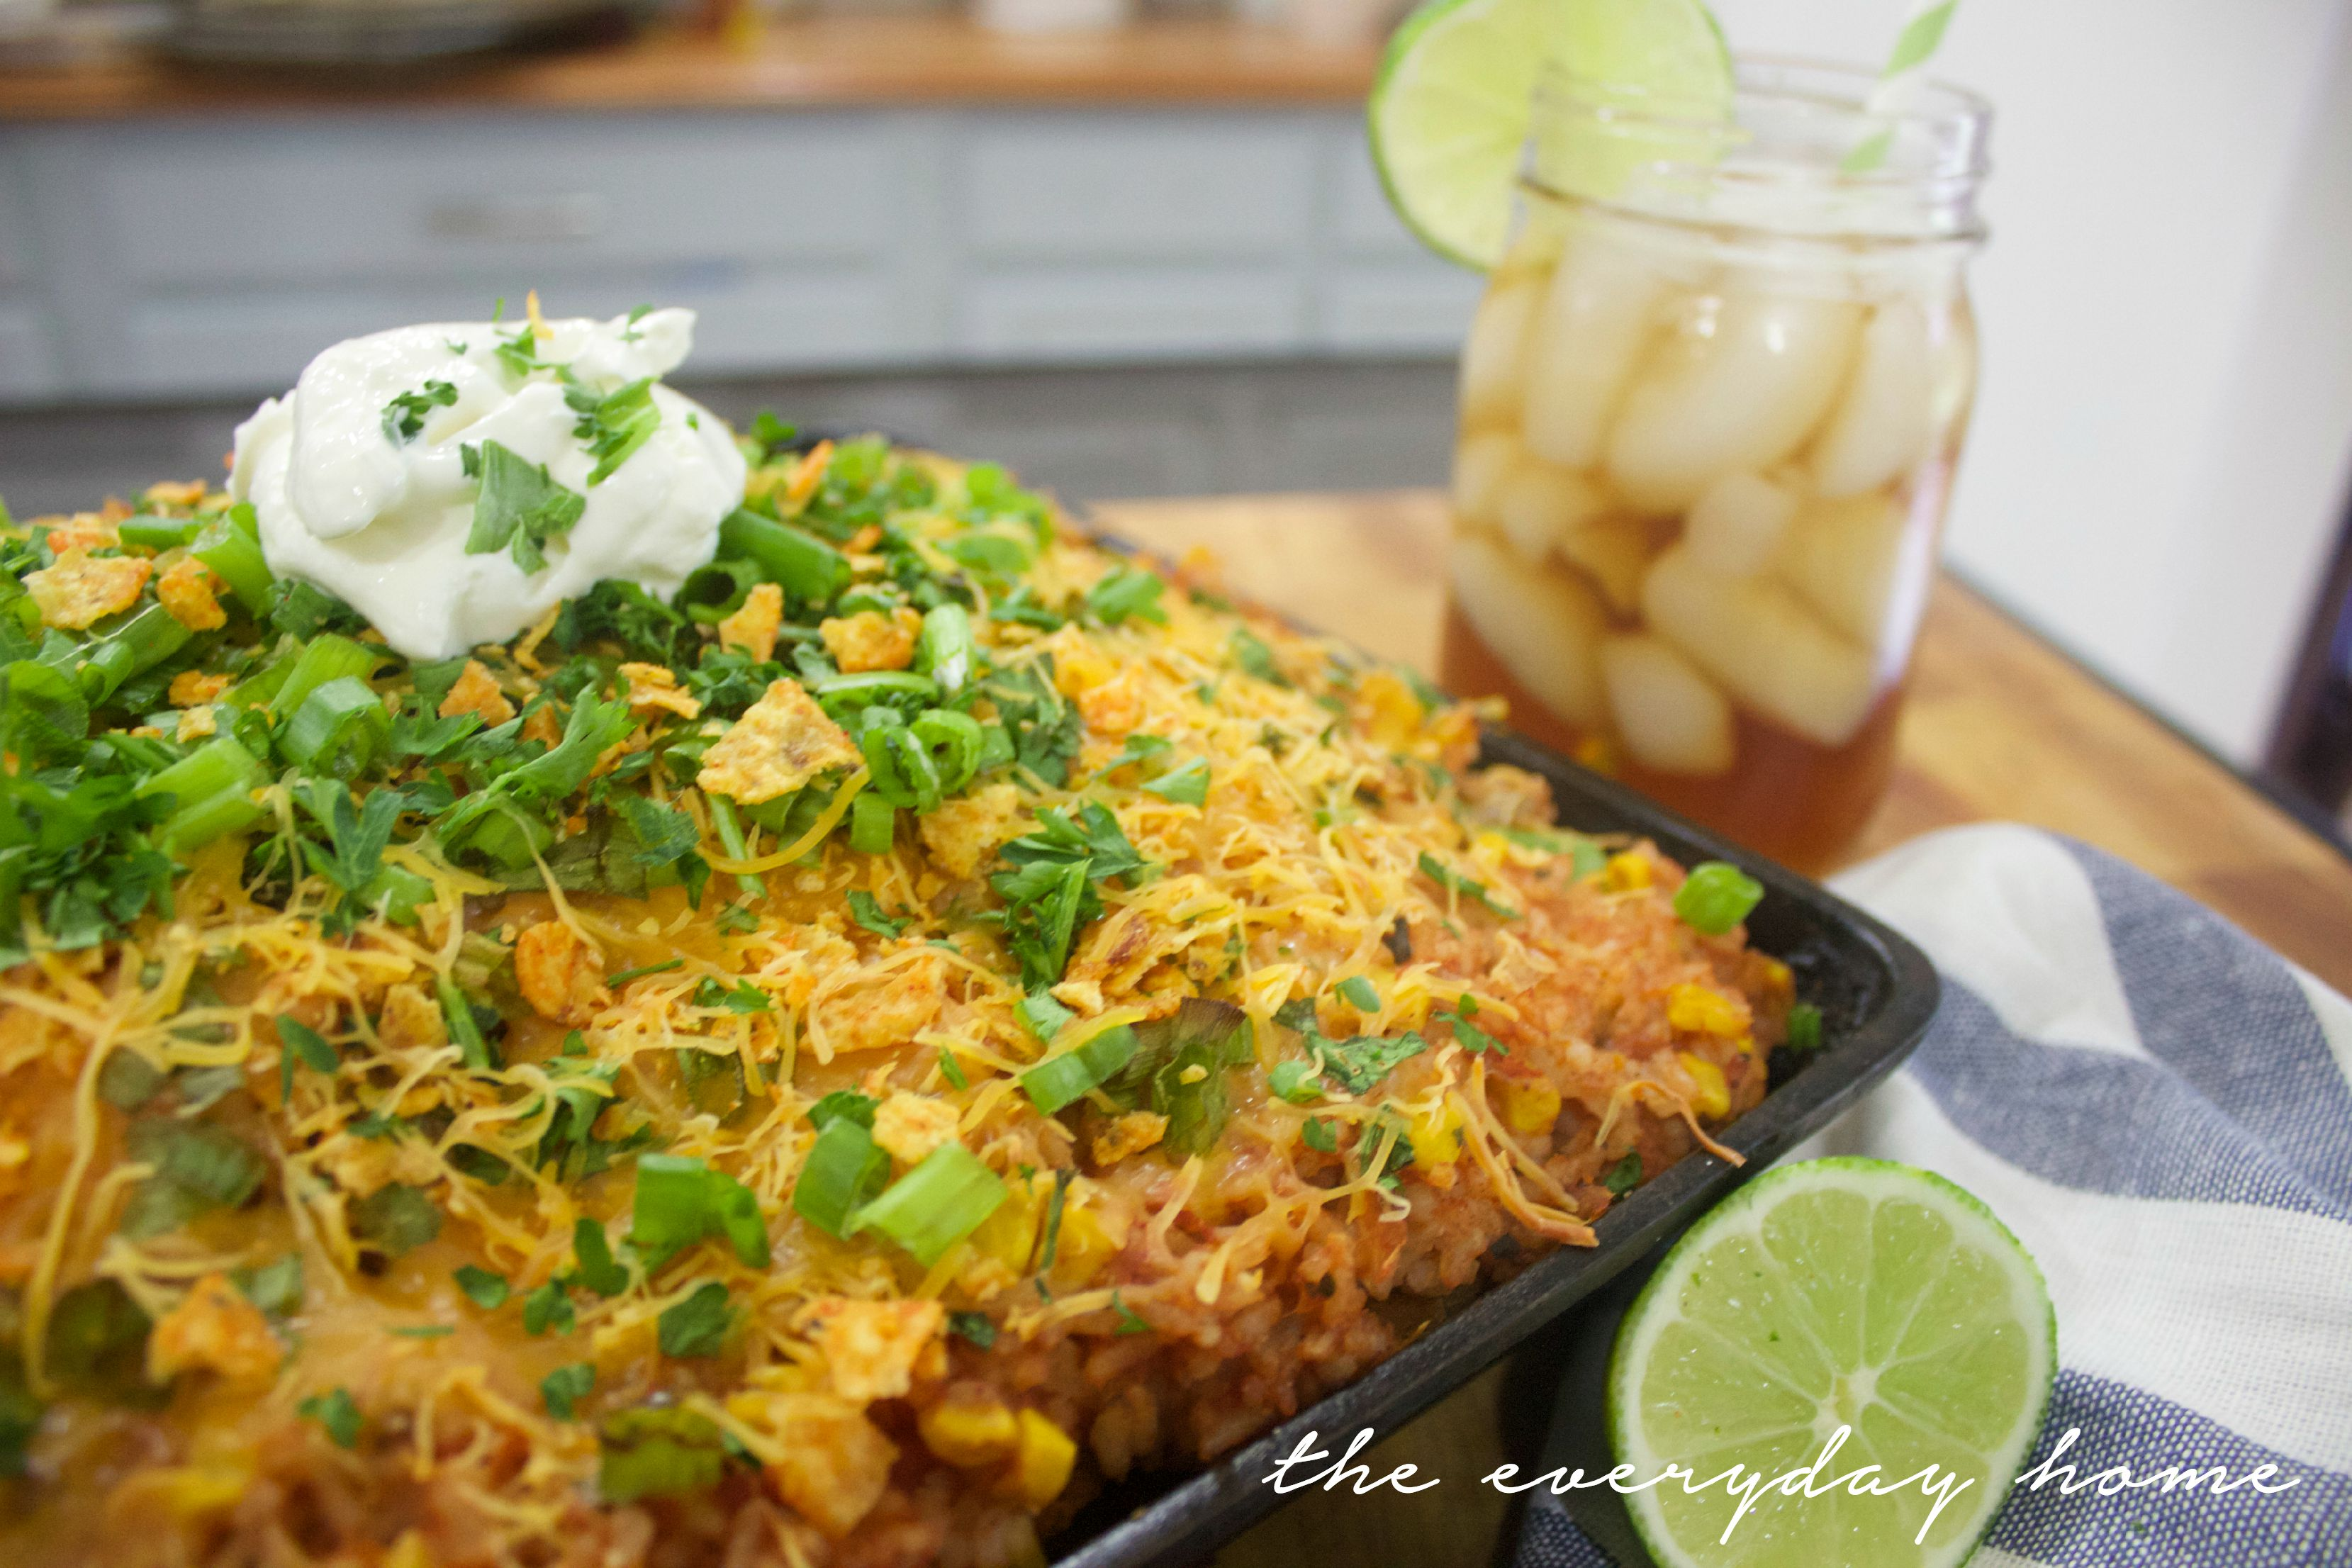 Mexi Cheesy Rice and Chicken Skillet | The Everyday Home |  www.everydayhomeblog.com